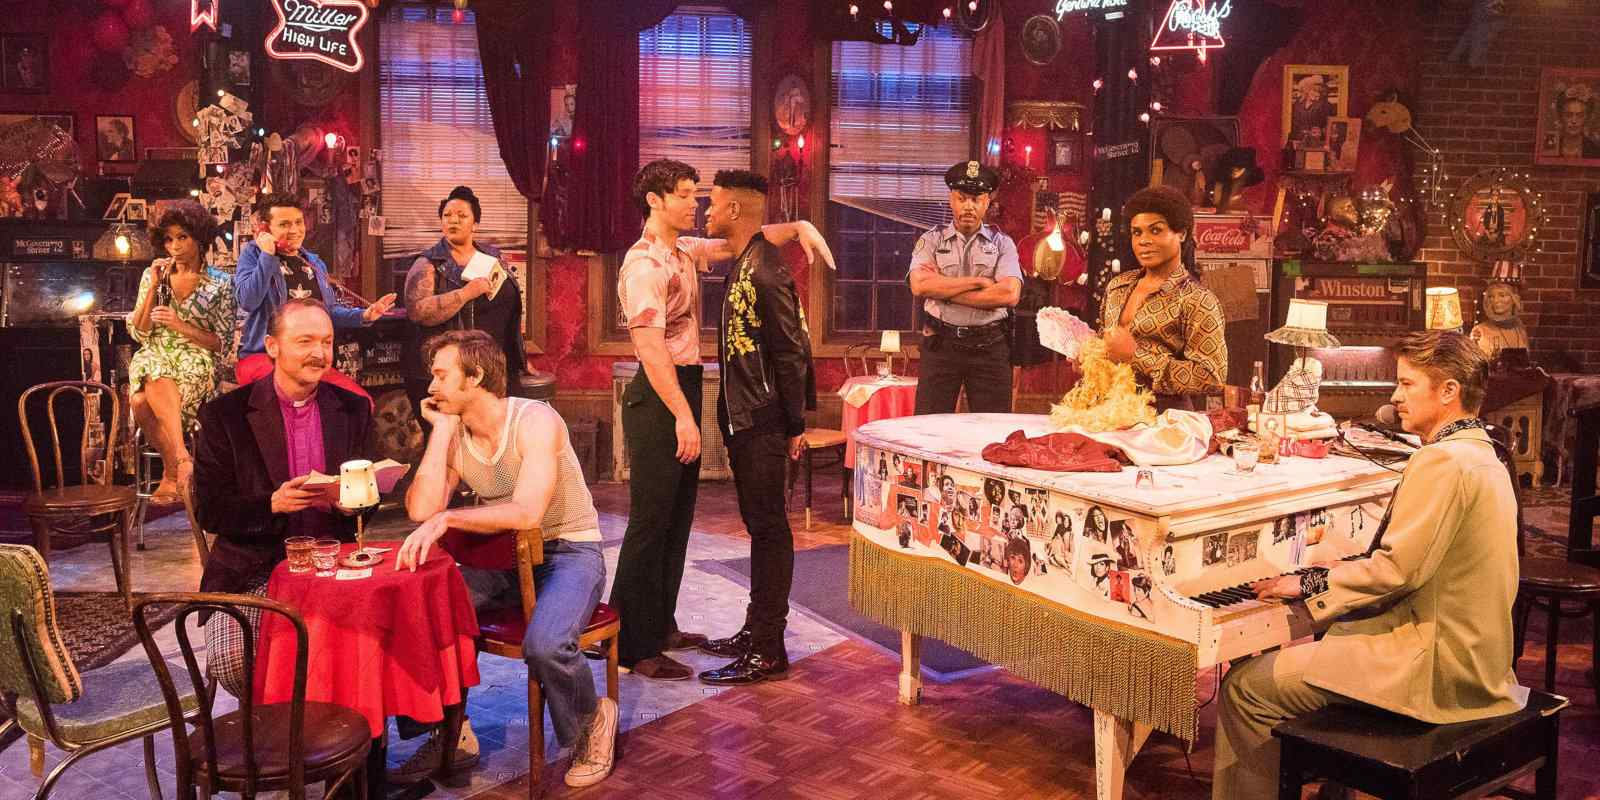 The View Upstairs is a gay theatre show in London you shouldn't miss